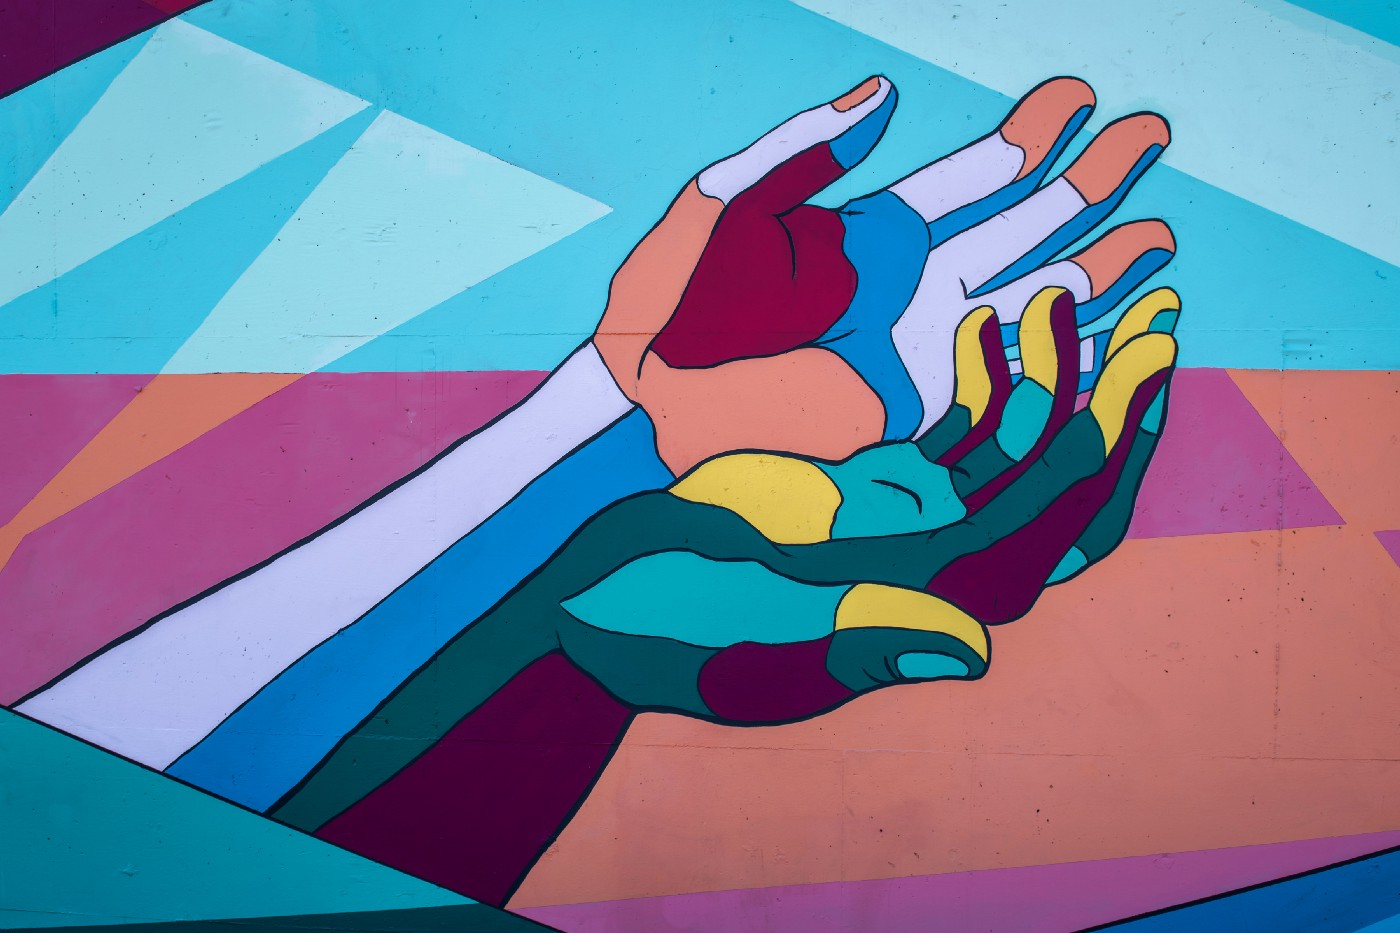 Illustrated hands in many-colored, geometric style, held out with palms up